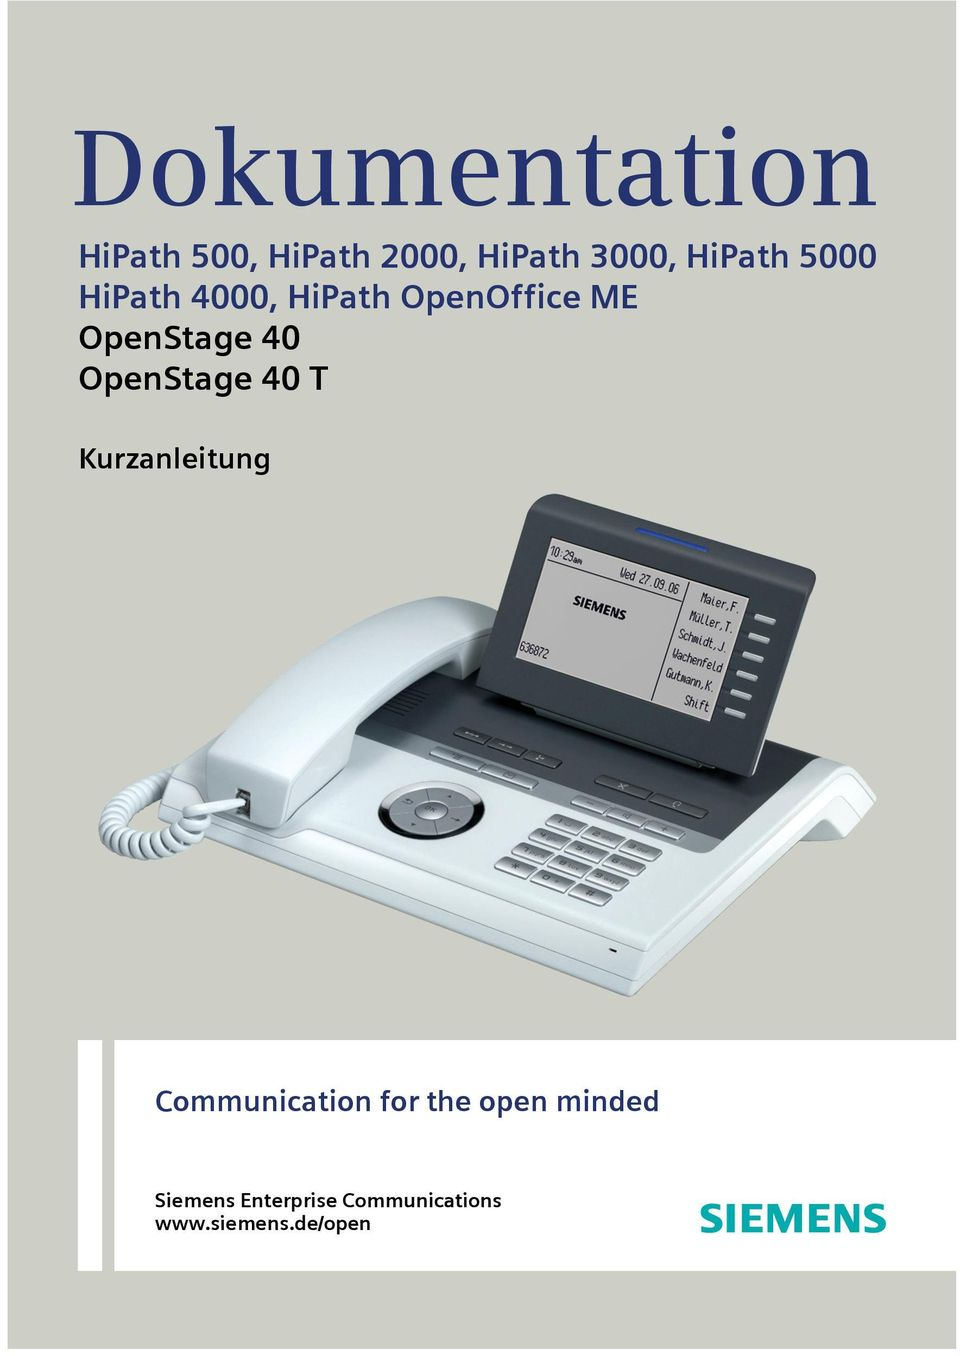 40 OpenStage 40 T Kurzanleitung Communication for the